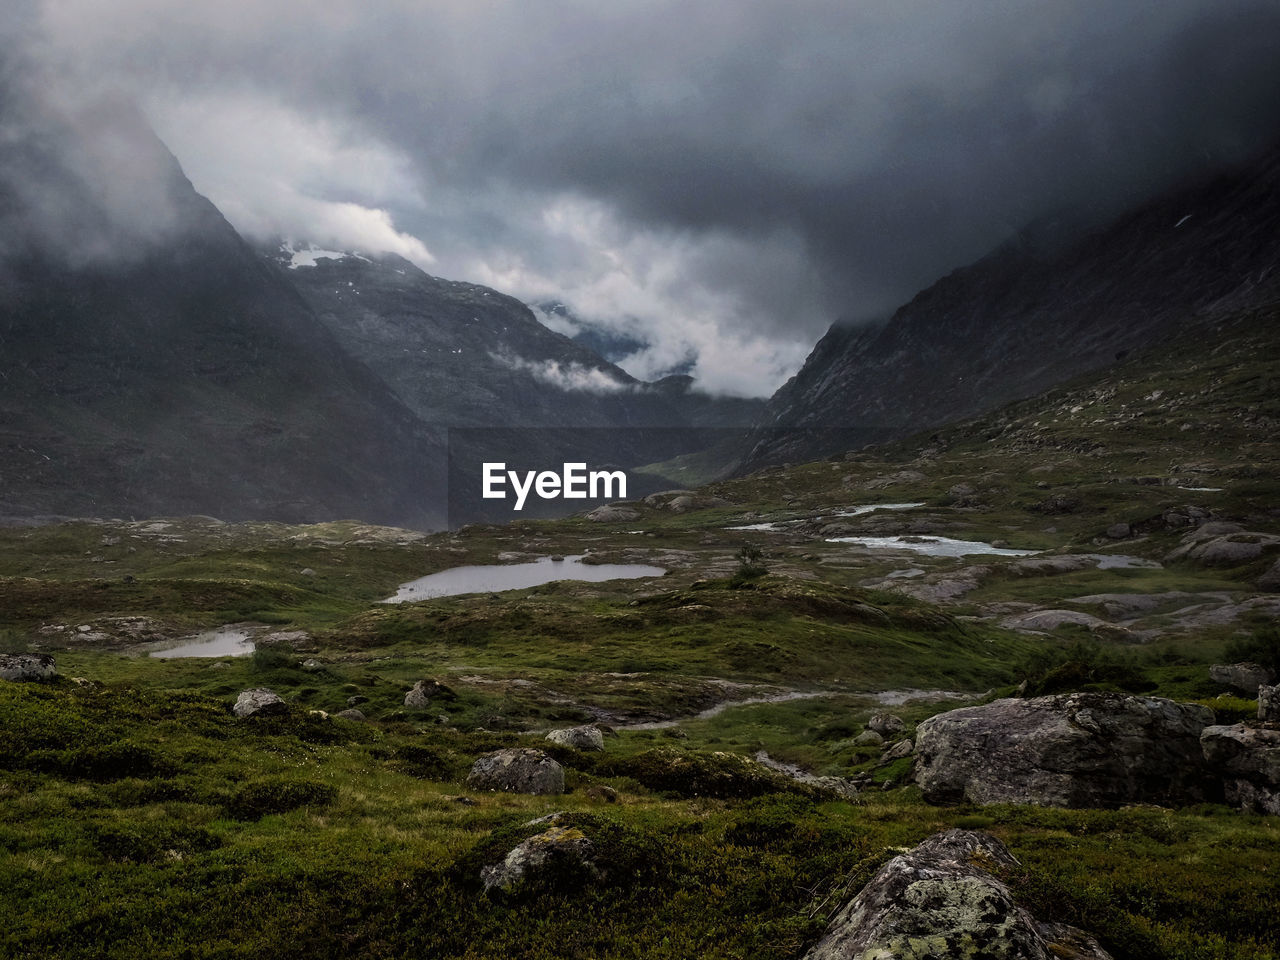 rough landscape in Breheimen National Park in Norway where you can experience barren mountains, streaming rivers, opalescent glaciers and rough untouched nature. Bad weather is normal. Breheimen National Park Norway The Great Outdoors - 2018 EyeEm Awards Beauty In Nature Clouds Environment Landscape Mountain Range Nature No People Norway Nature Outdoors Remote Scenery Scenics - Nature Valley Wilderness